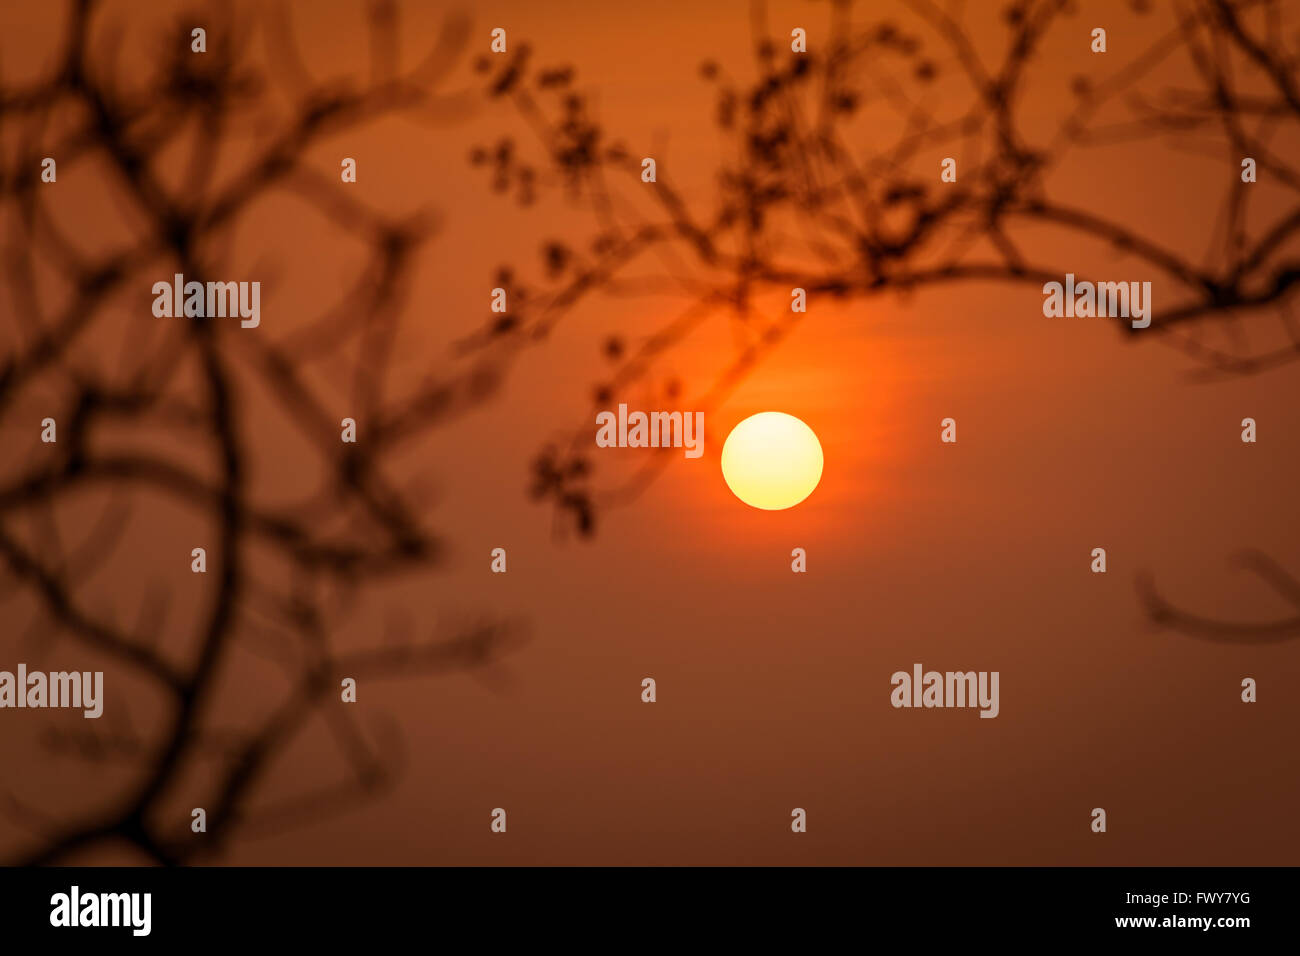 Beautiful sunset with silhouete of Blurred branches.focus on sun - Stock Image